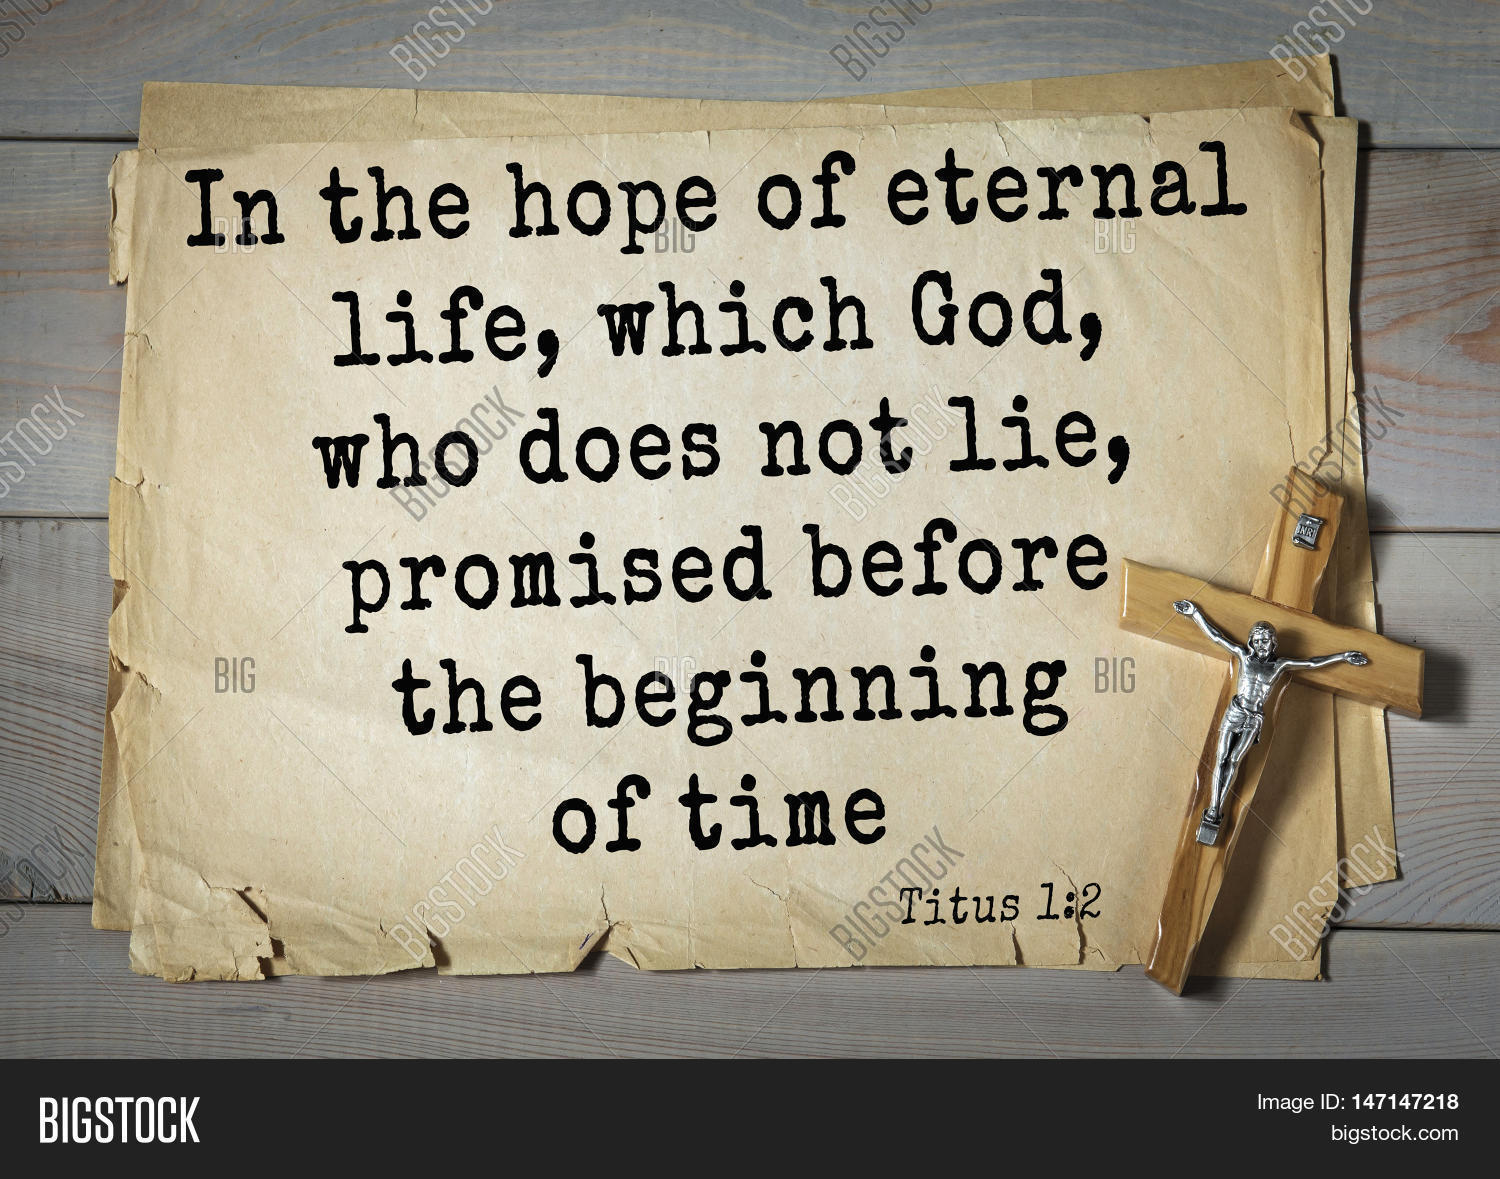 Bible Quotes About Hope Top 100Bible Verses About Hopeimage & Photo  Bigstock